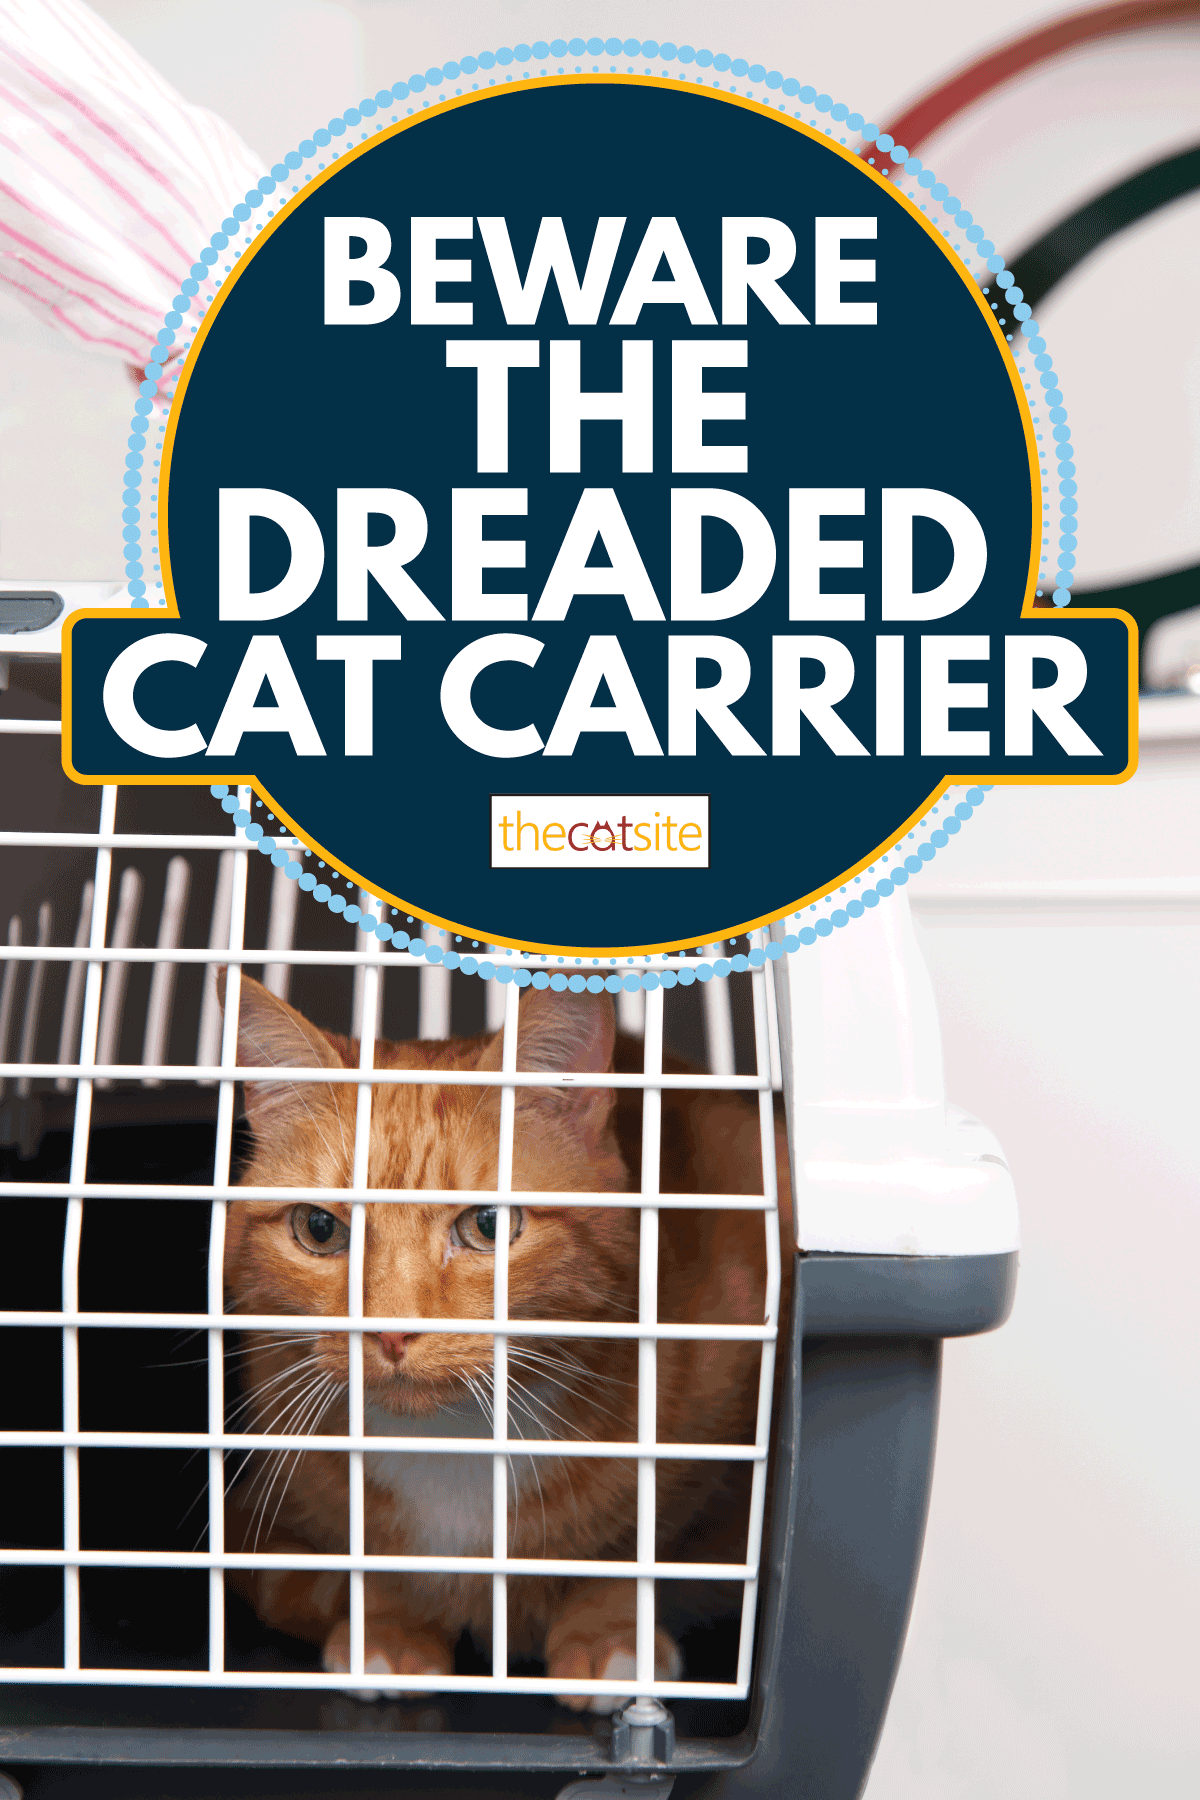 Woman Taking Cat To Vet In Carrier. Beware The Dreaded Cat Carrier